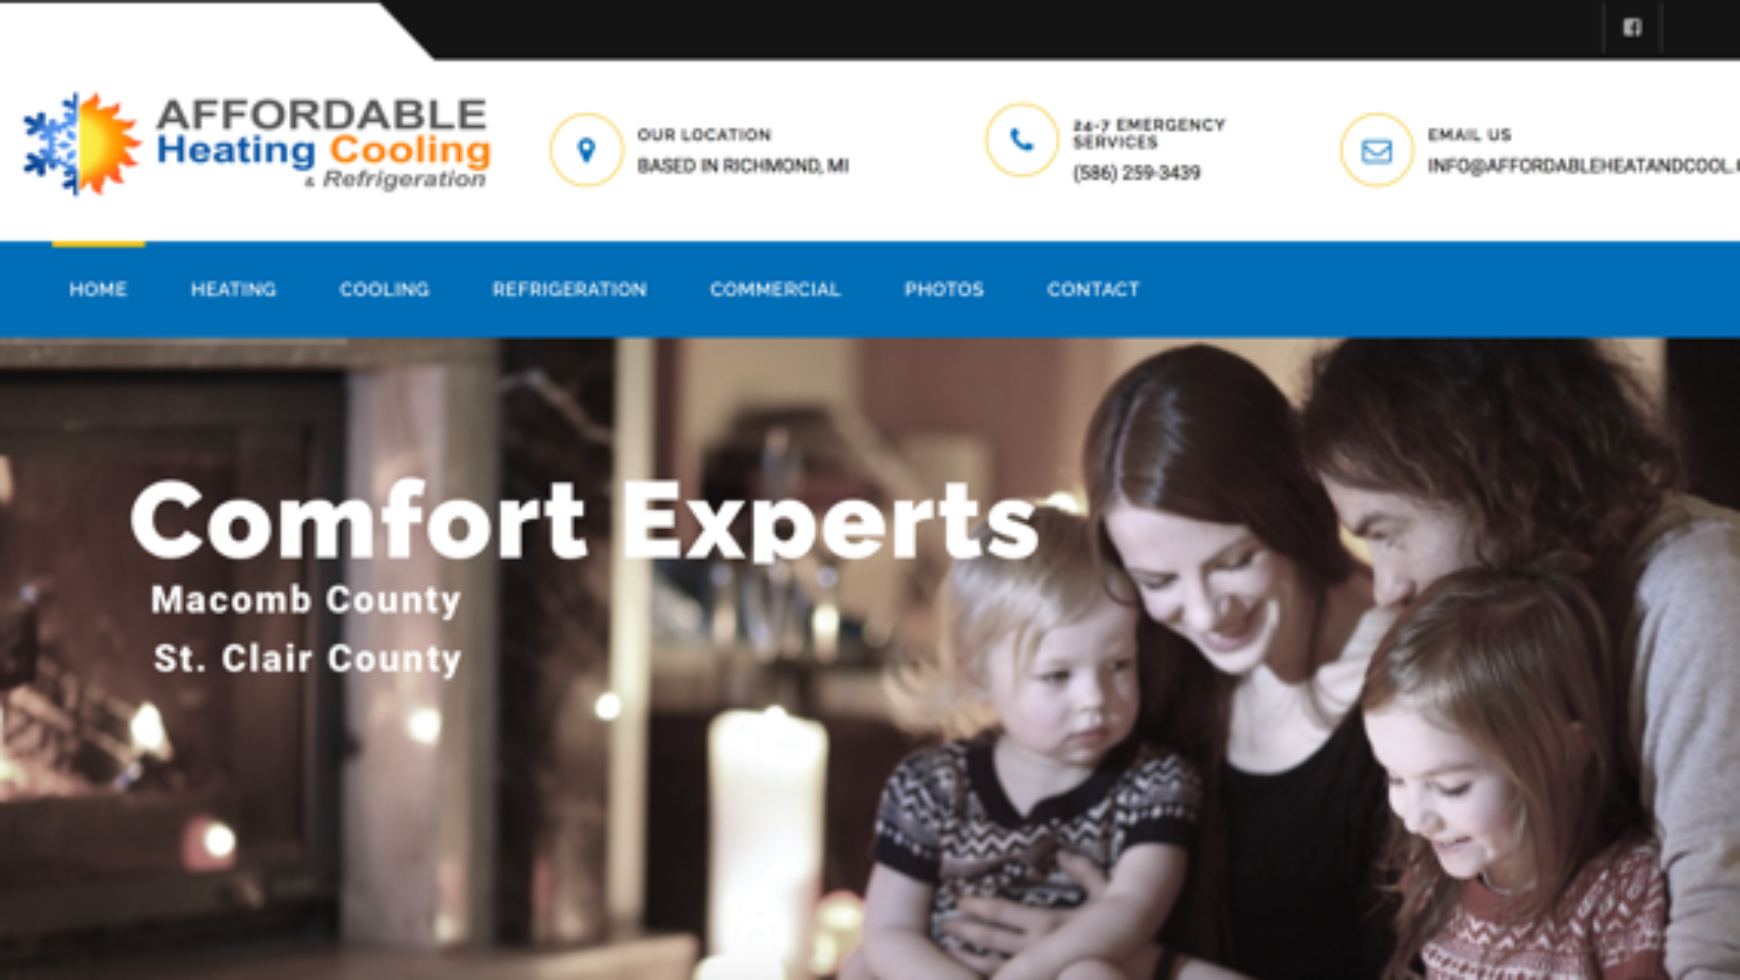 Affordable Heating, Cooling & Refrigeration Website – Richmond, MI